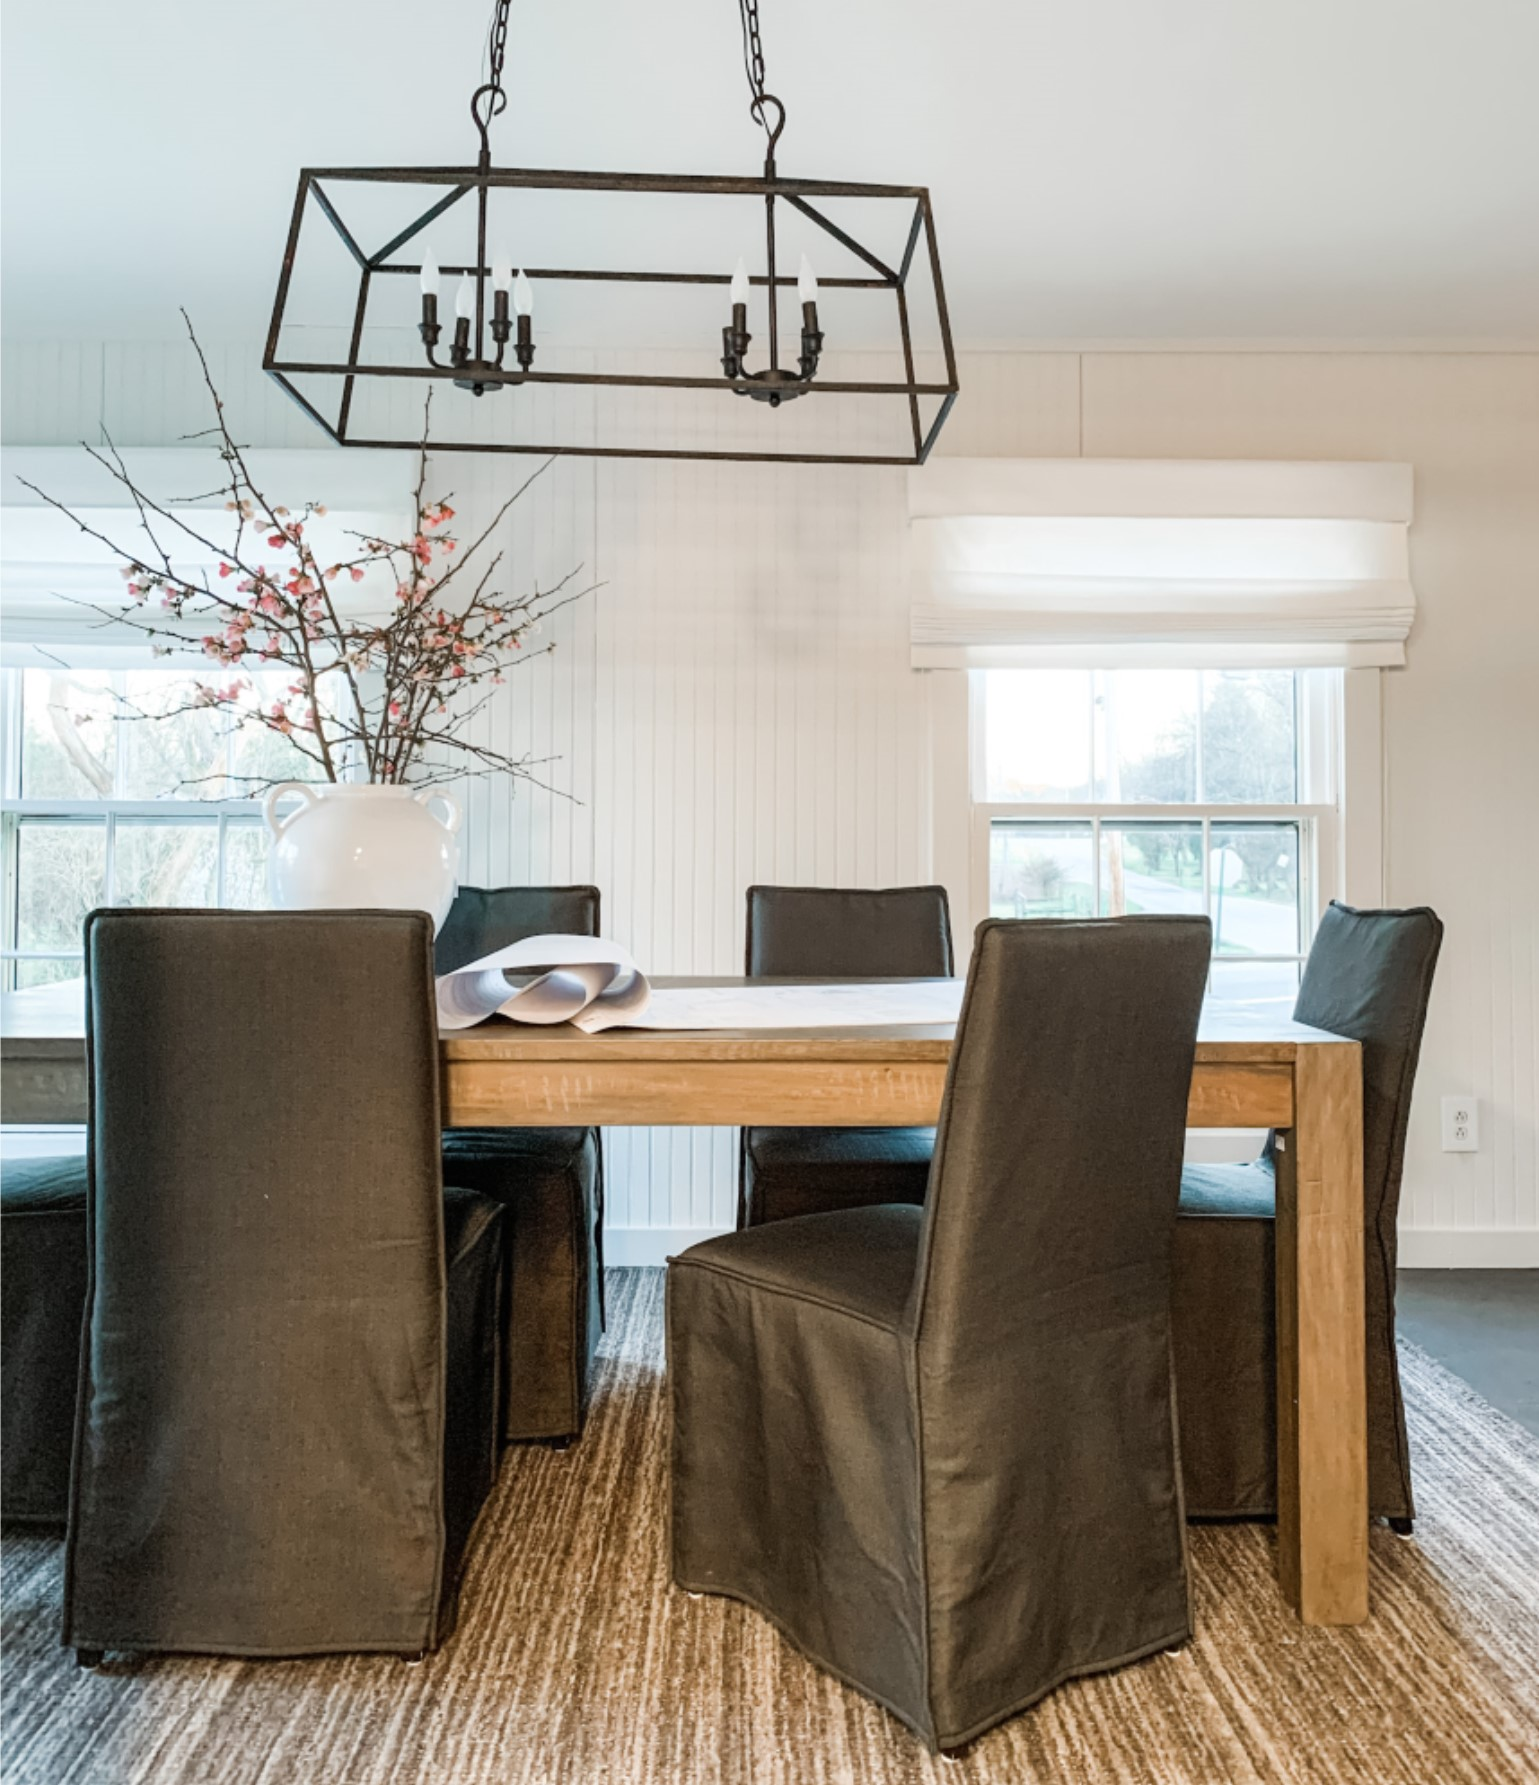 Design studio conference room with linear chandelier, wood conference table, and gray upholstered chairs